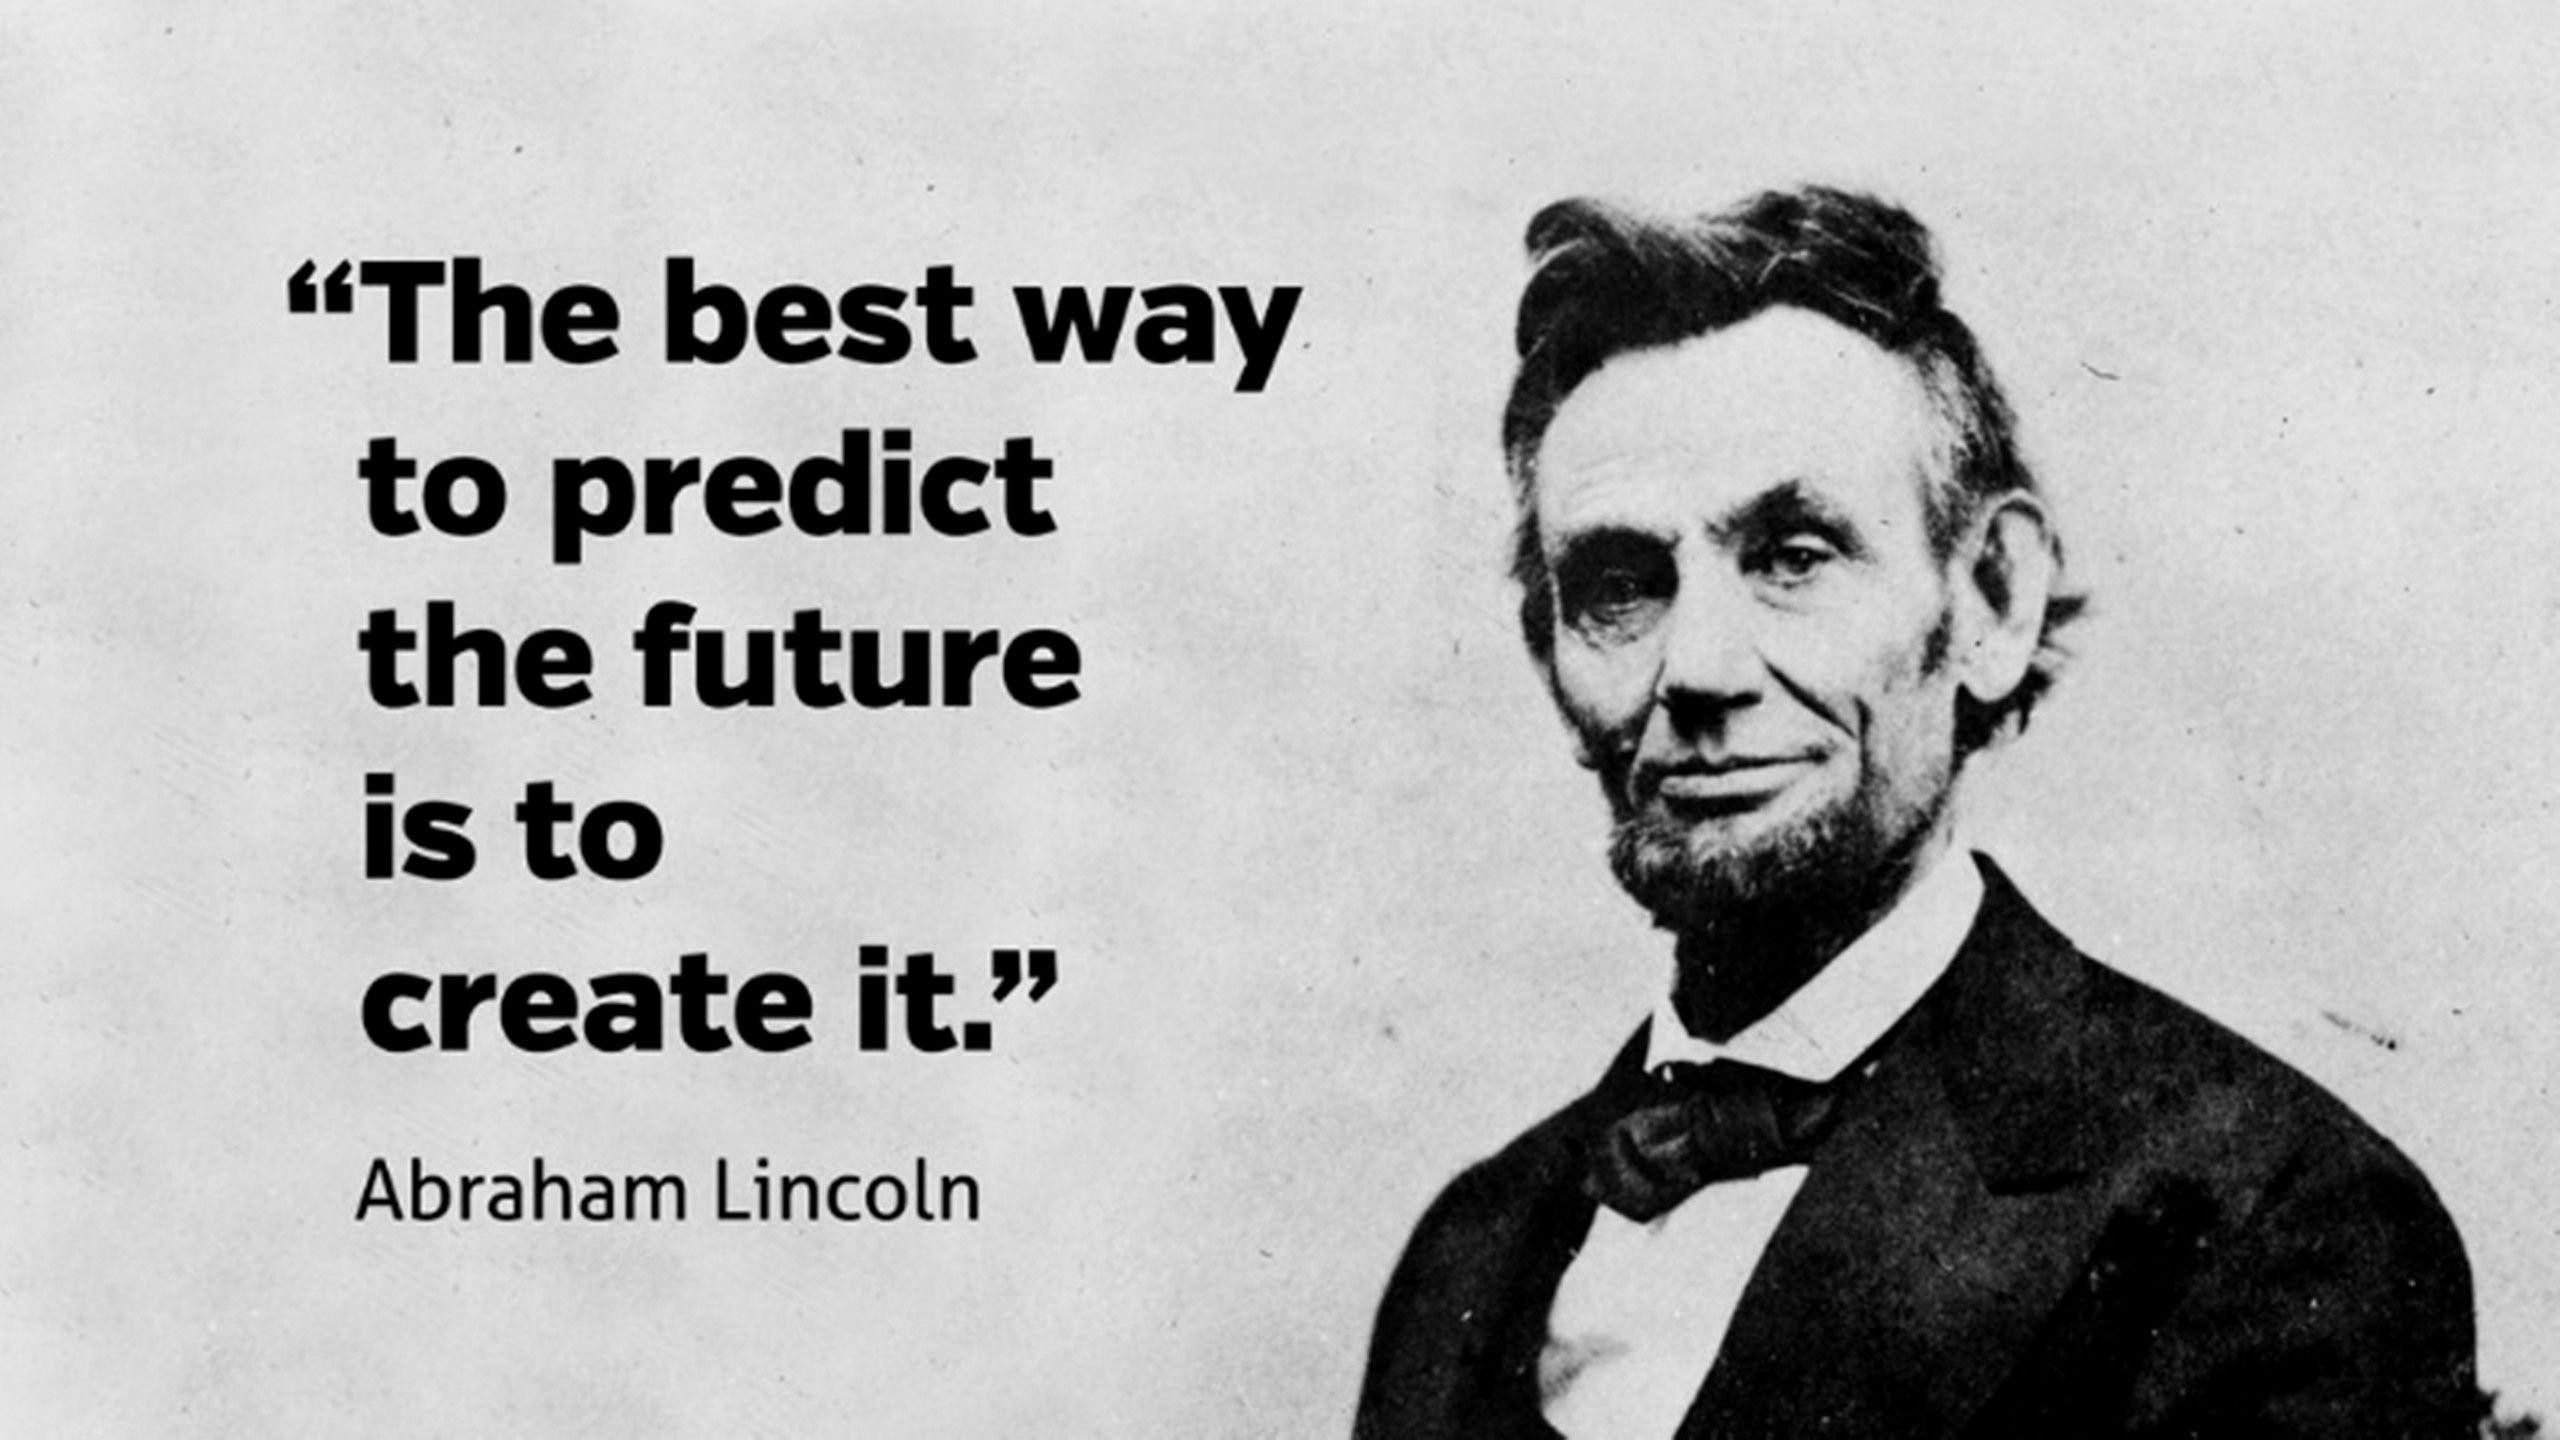 Abe Lincoln Quotes On Life Abraham Lincoln Wallpaper 64 Images